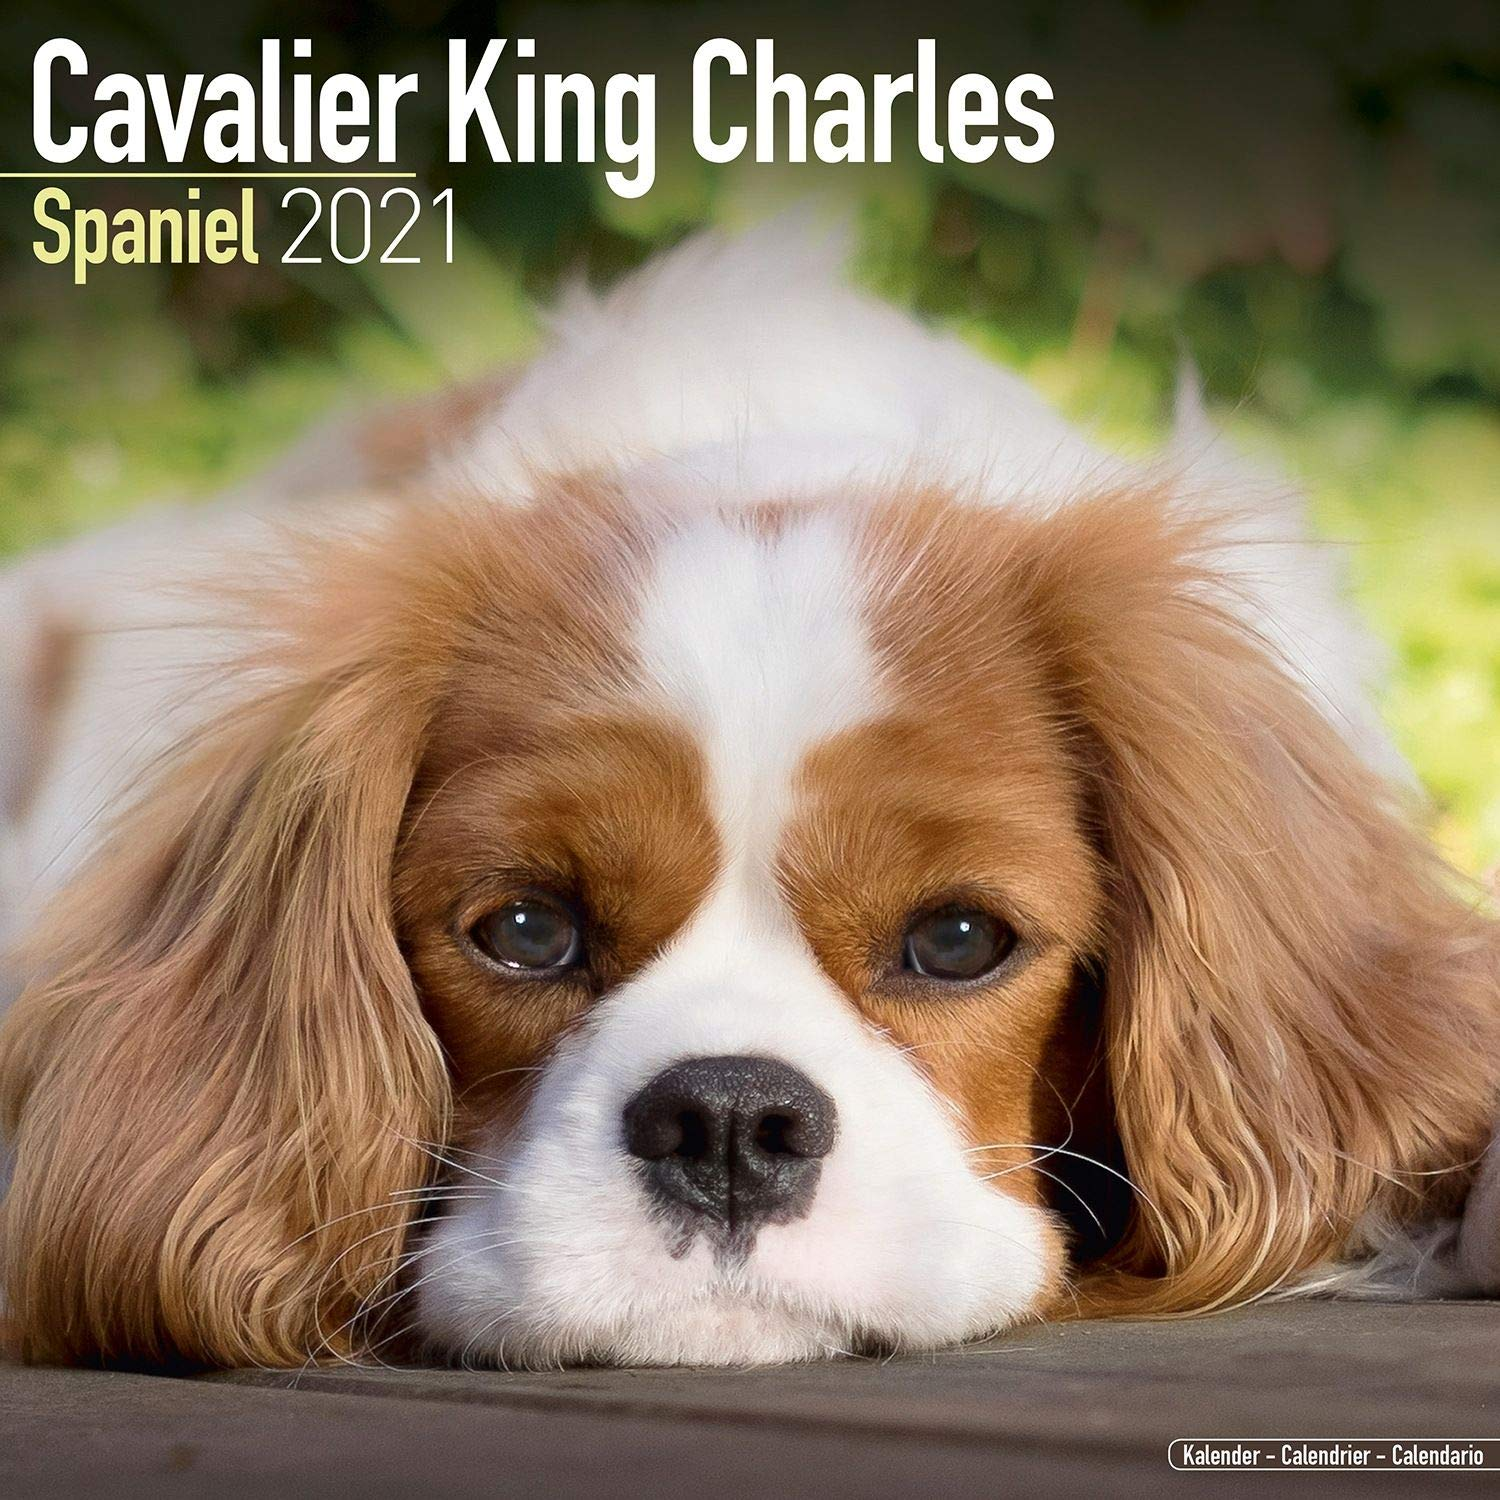 Cavalier King Charles Spaniel Calendar   Dog Breed Calendars